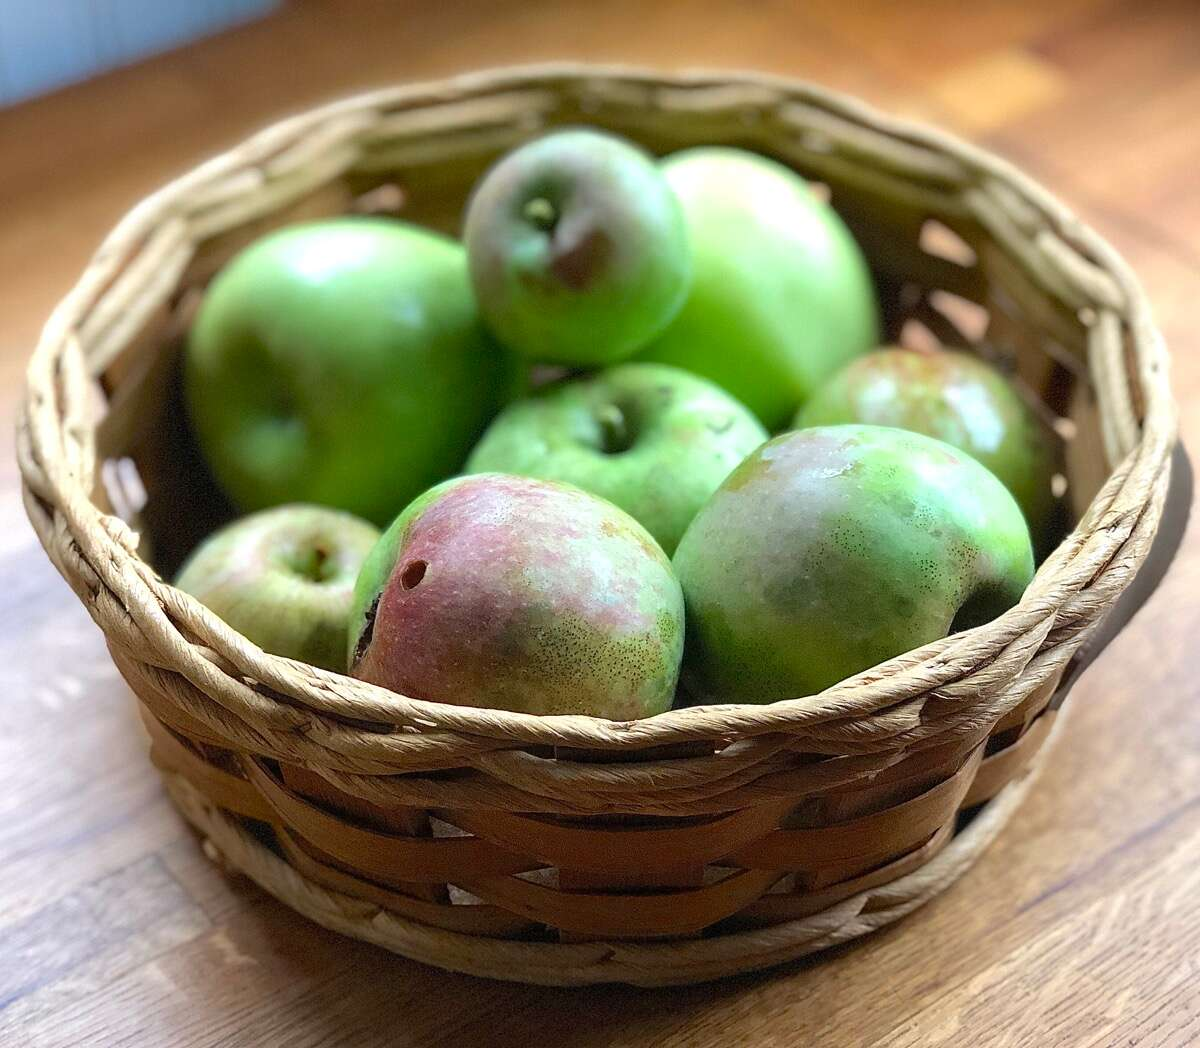 Just-picked apples in a basket.